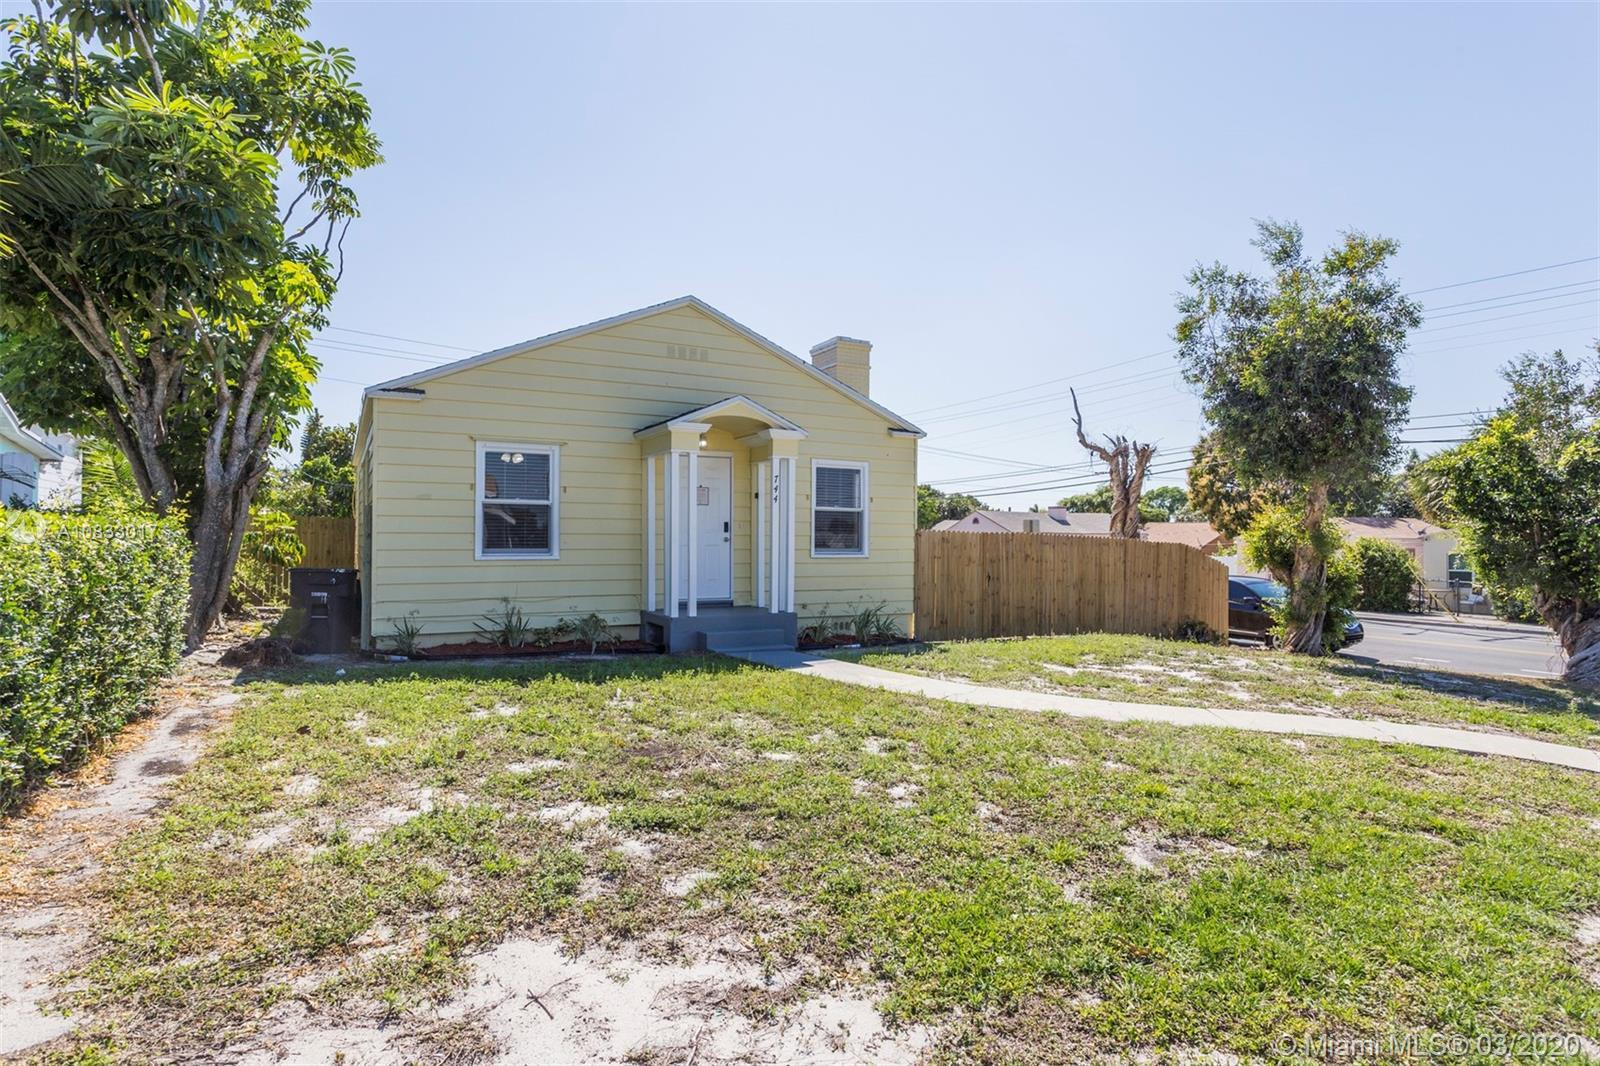 This home is a great opportunity to move into the West Palm Beach area. This home isn't just bright